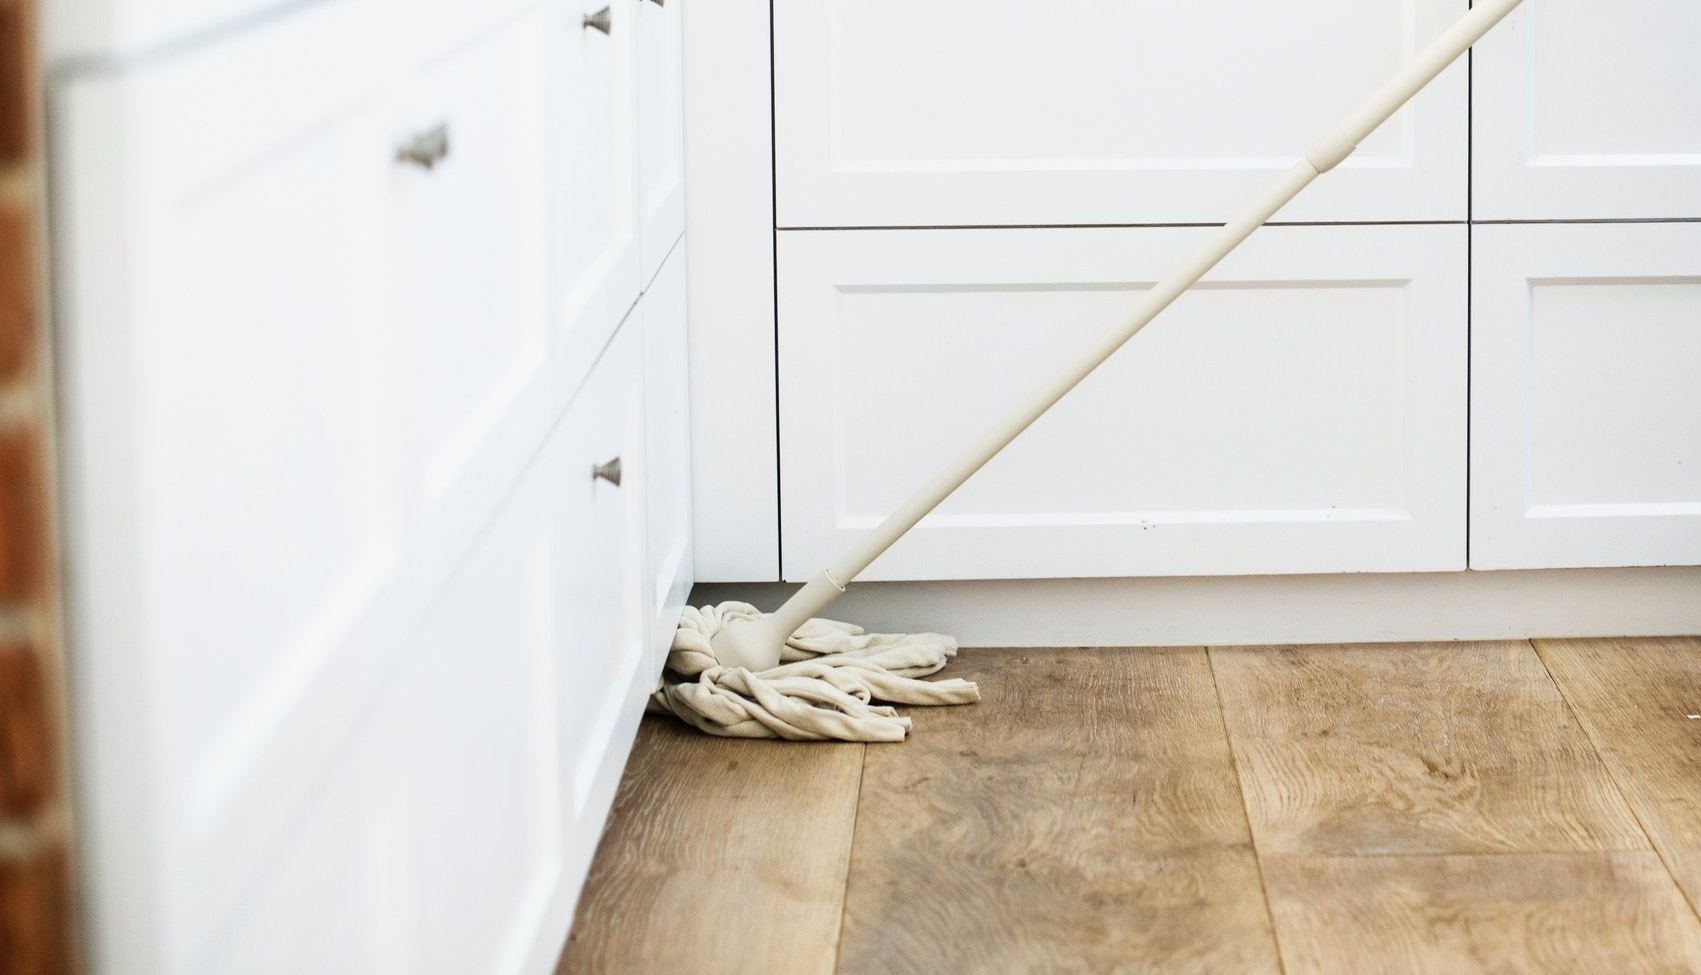 deep cleaning company in New Jersey